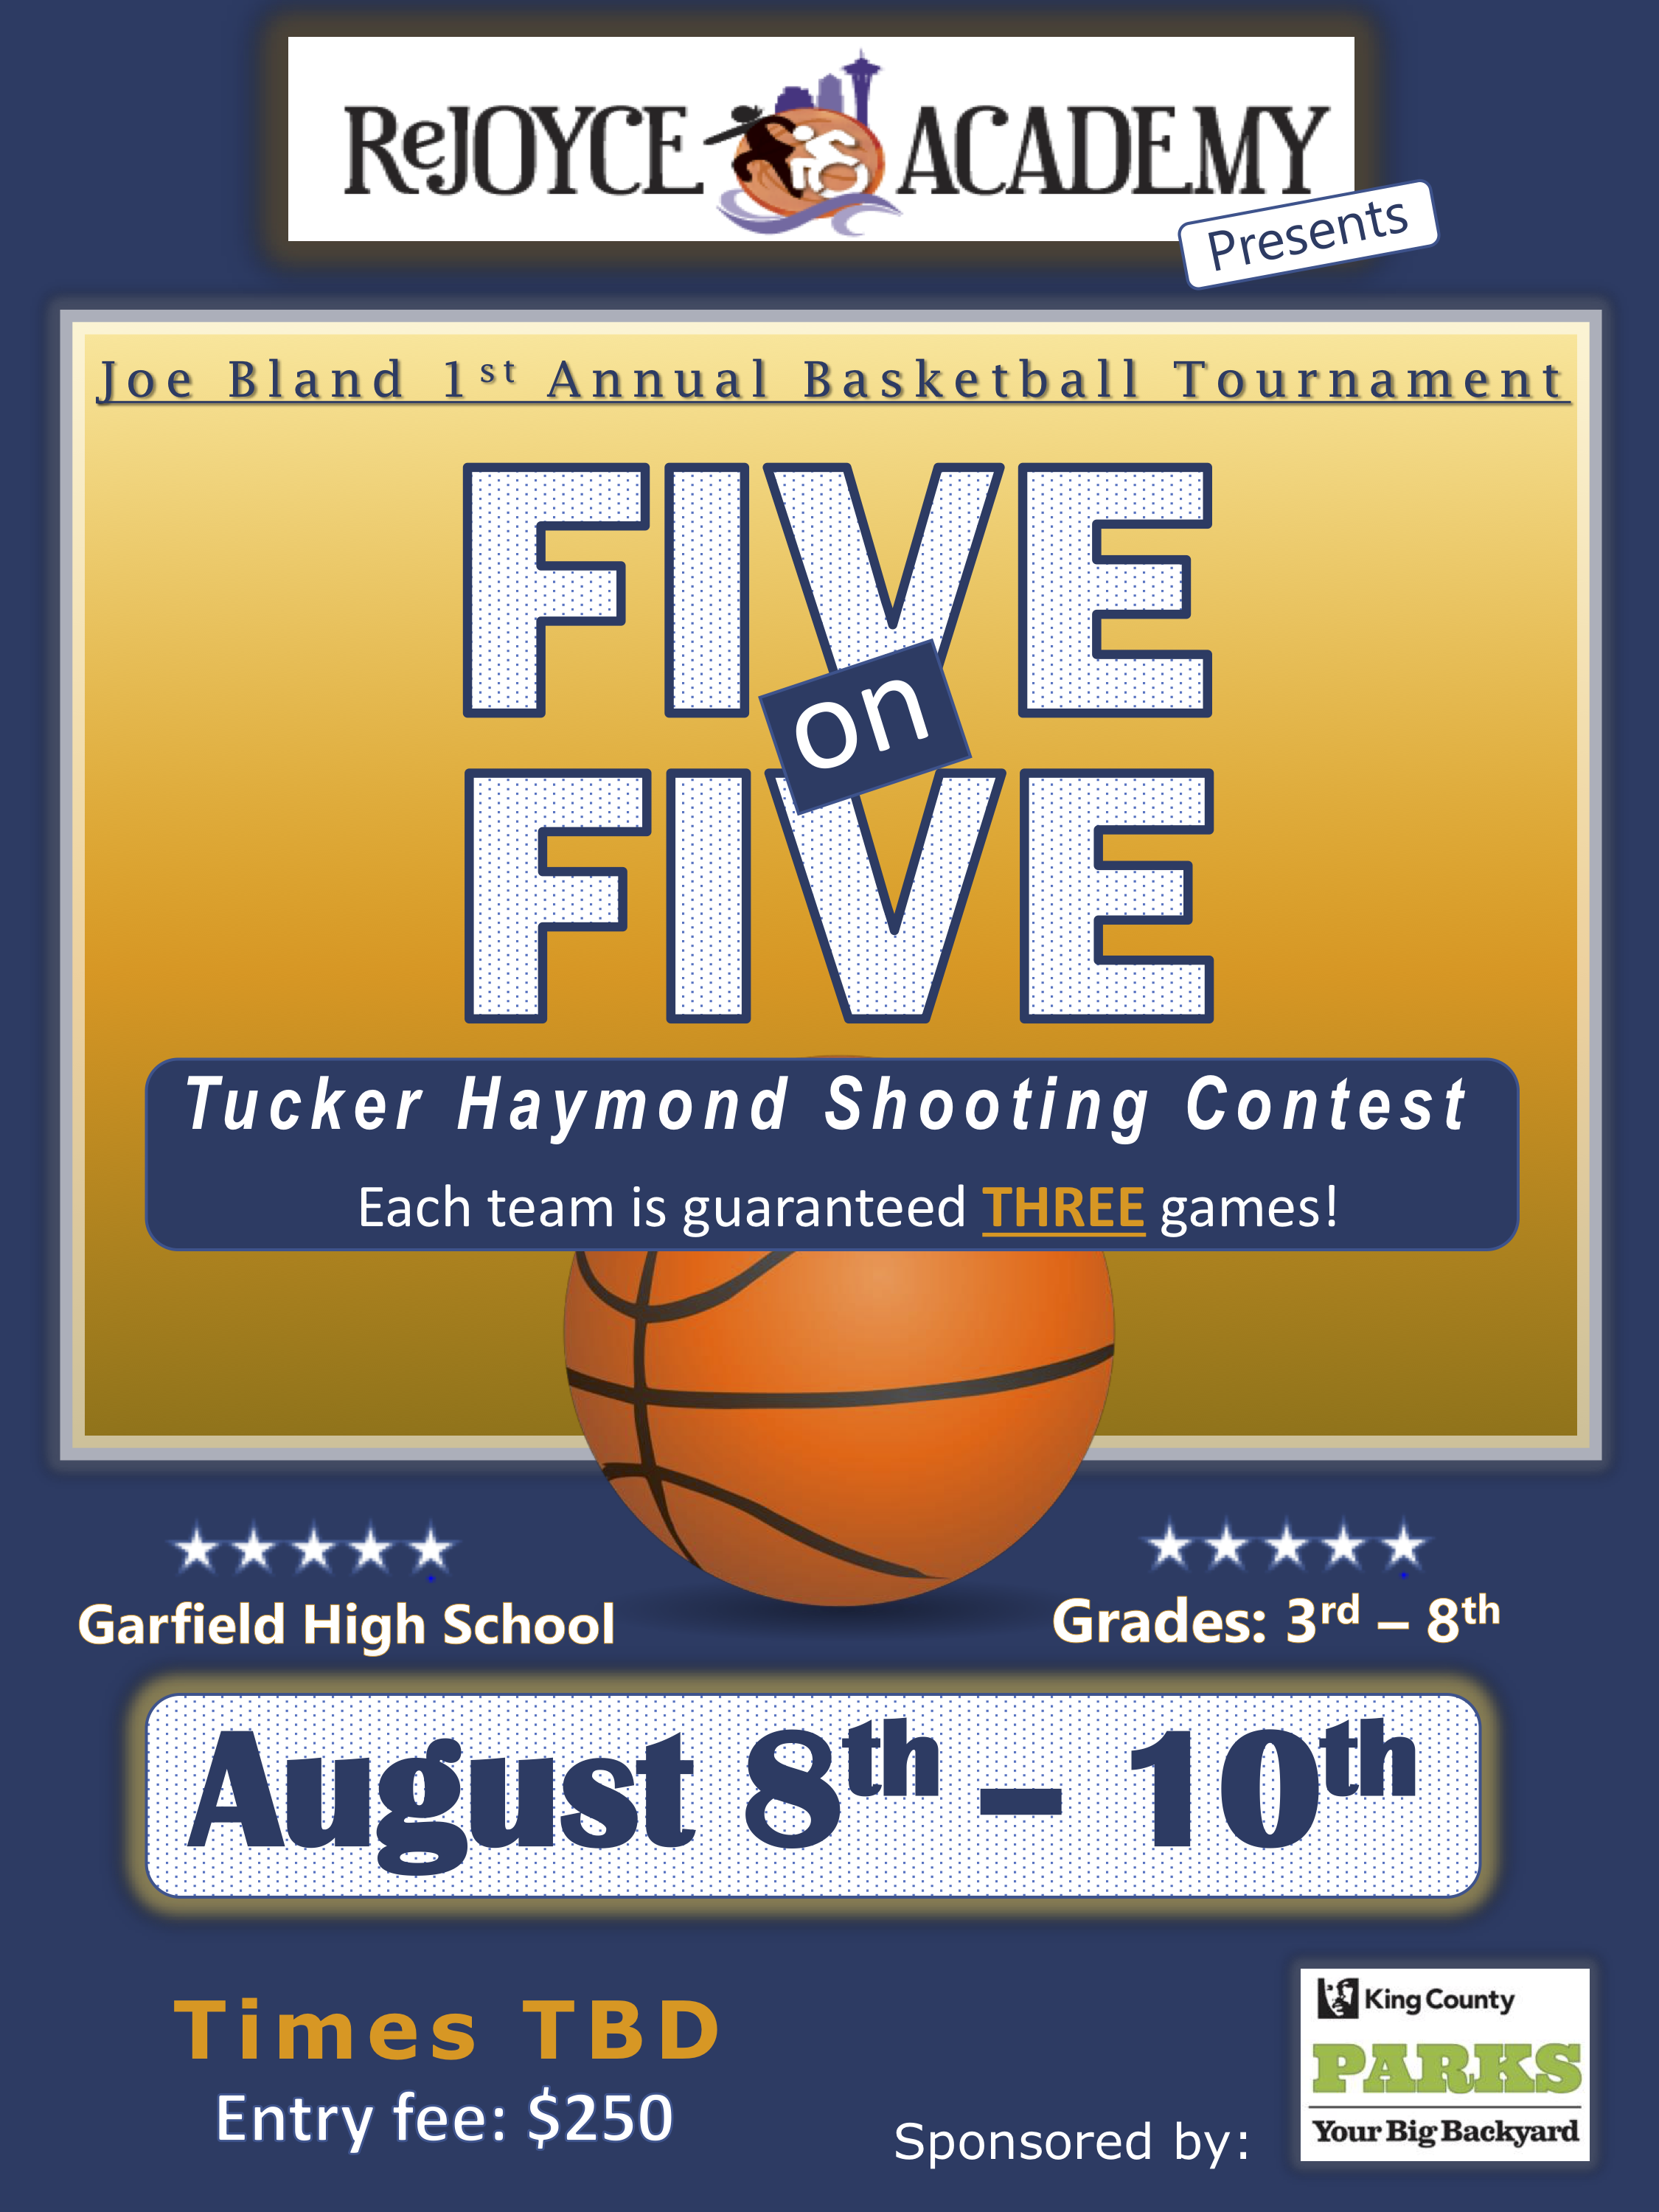 Joe Bland 1st Annual Basketball Tournament Flyer.png